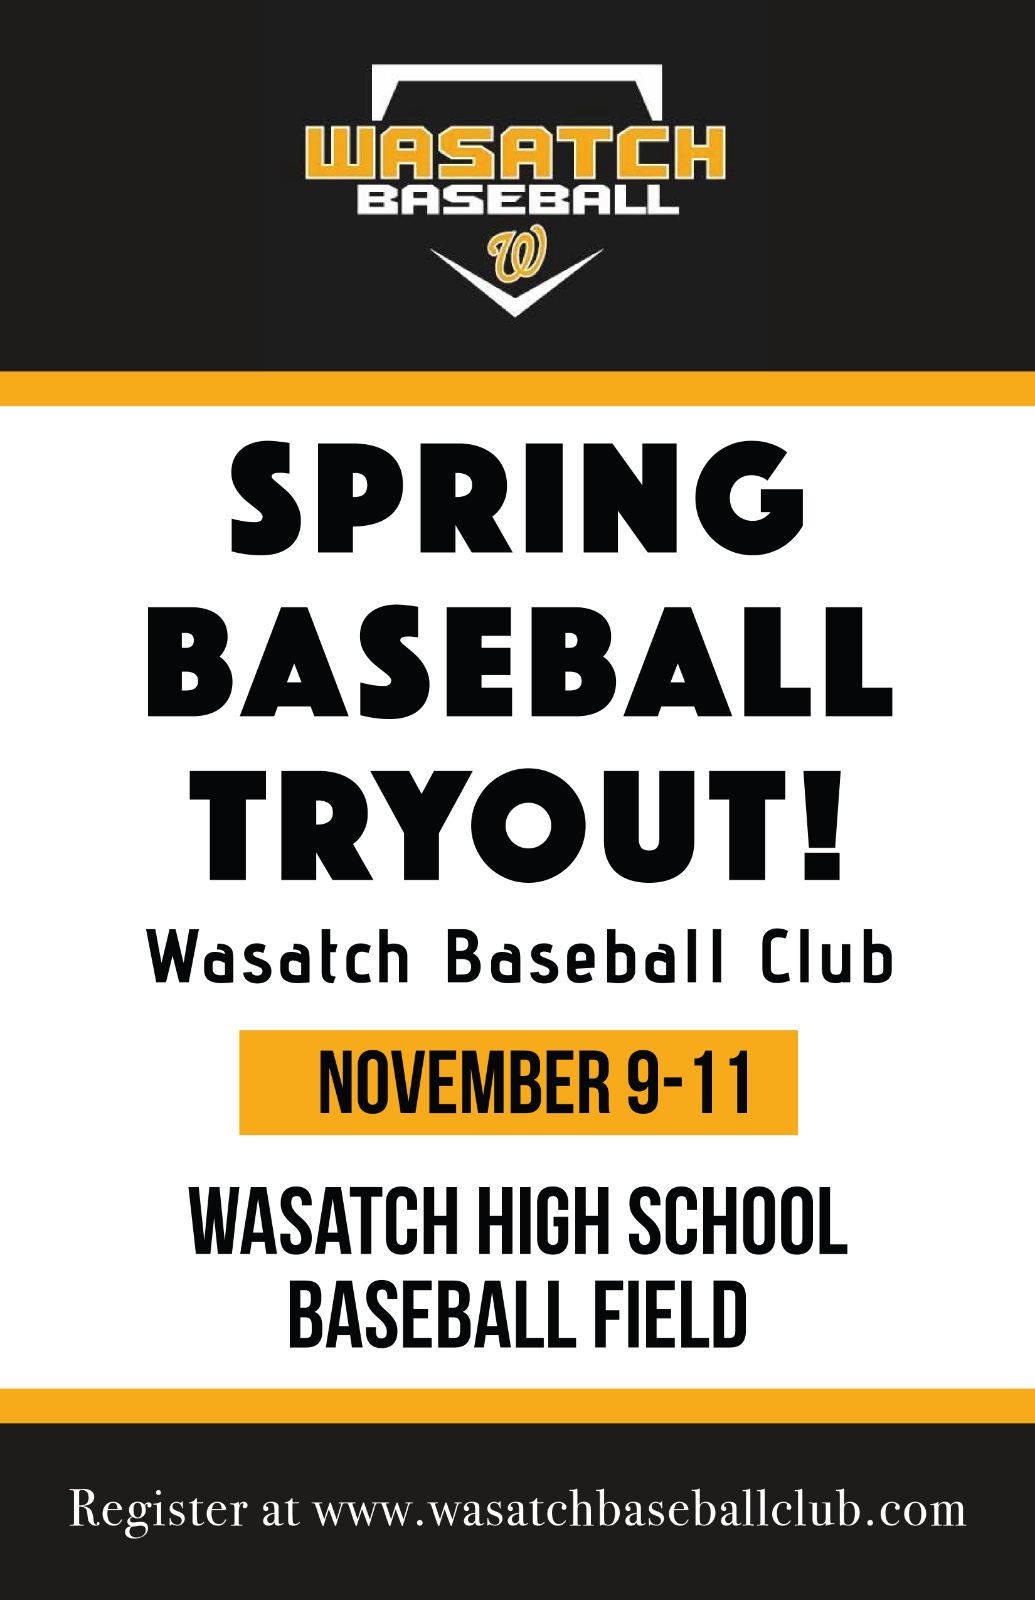 2021 Spring Wasatch Baseball Club Tryouts!